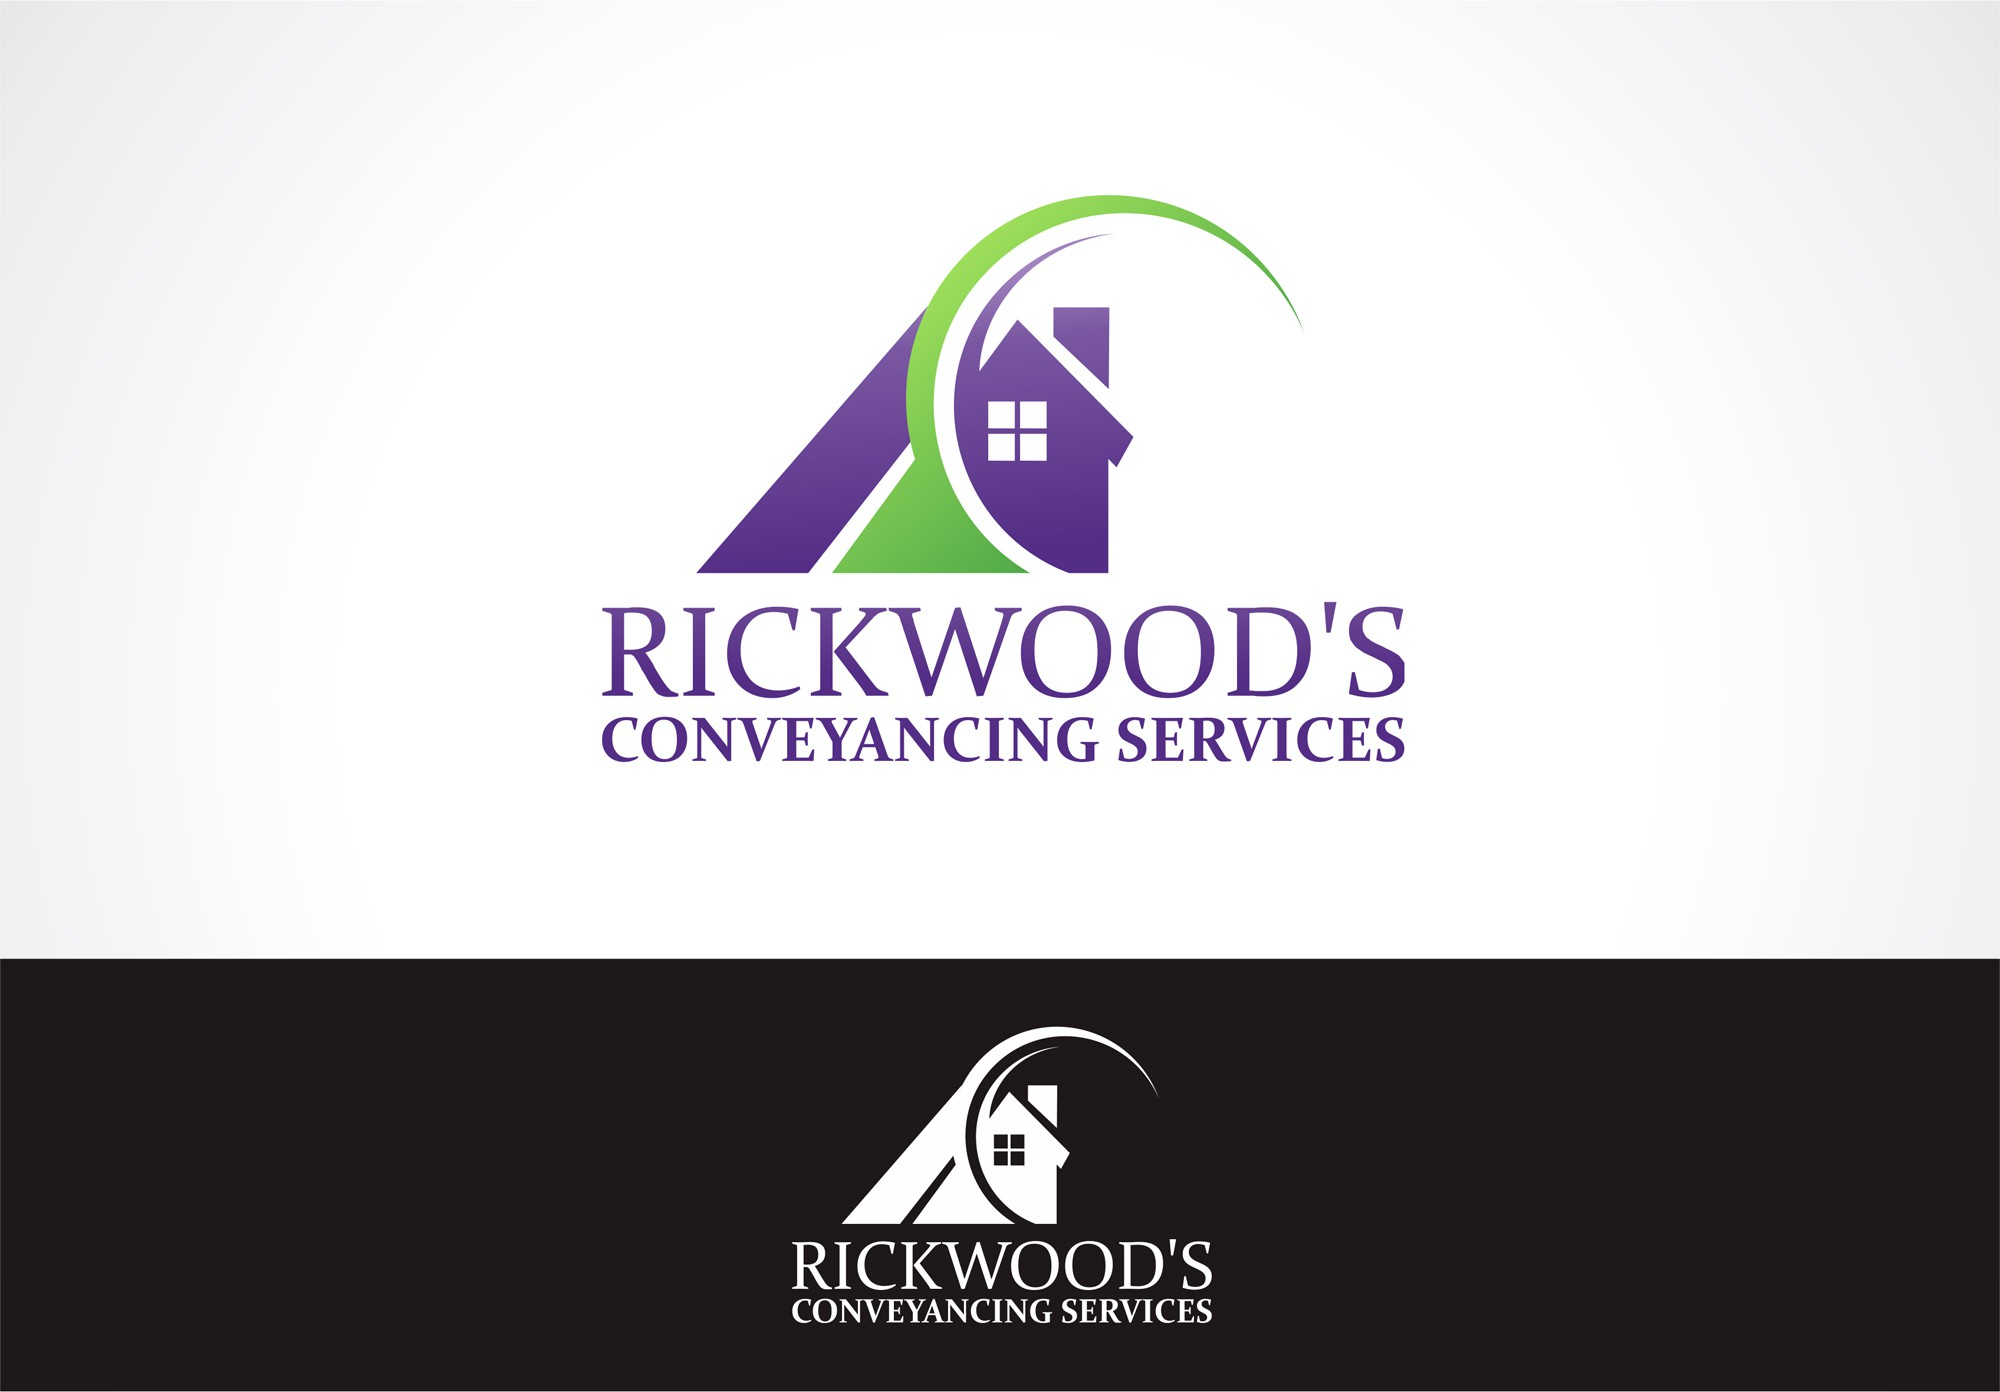 Help Rickwood's Conveyancing Services with a new logo